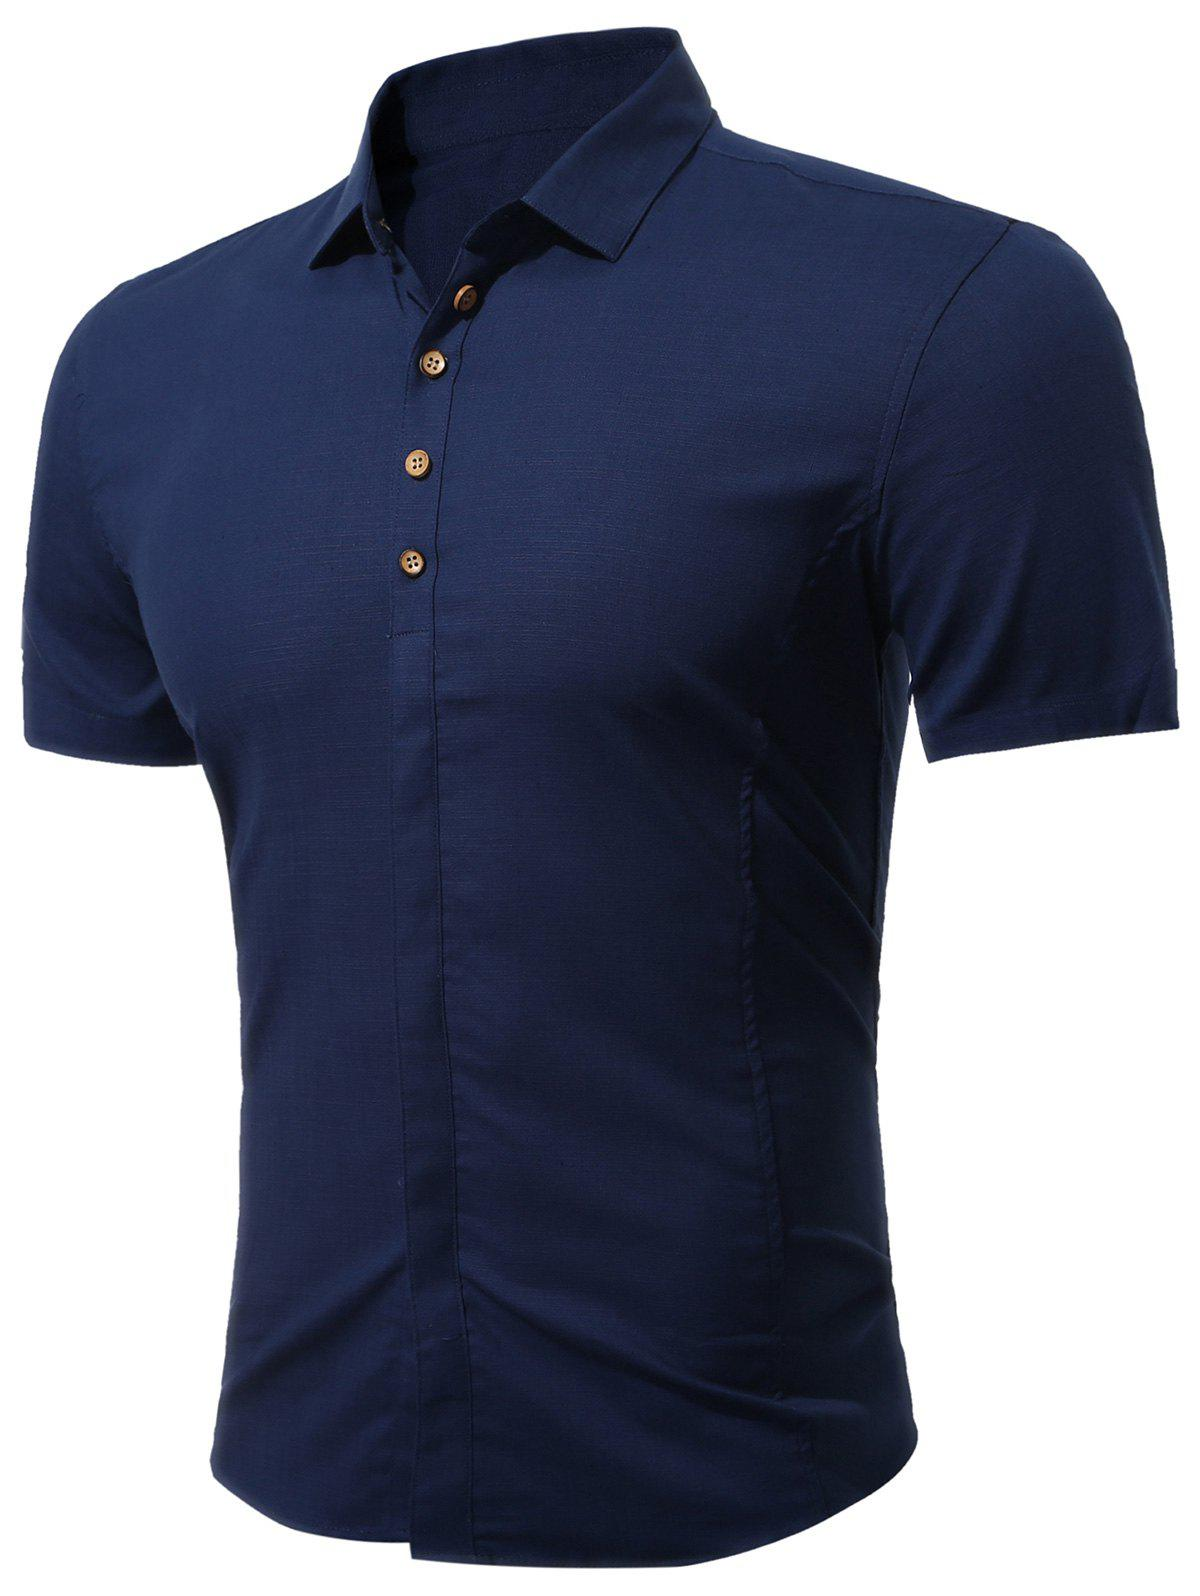 Short Sleeve Multi Botton Up Shirt - DEEP BLUE L